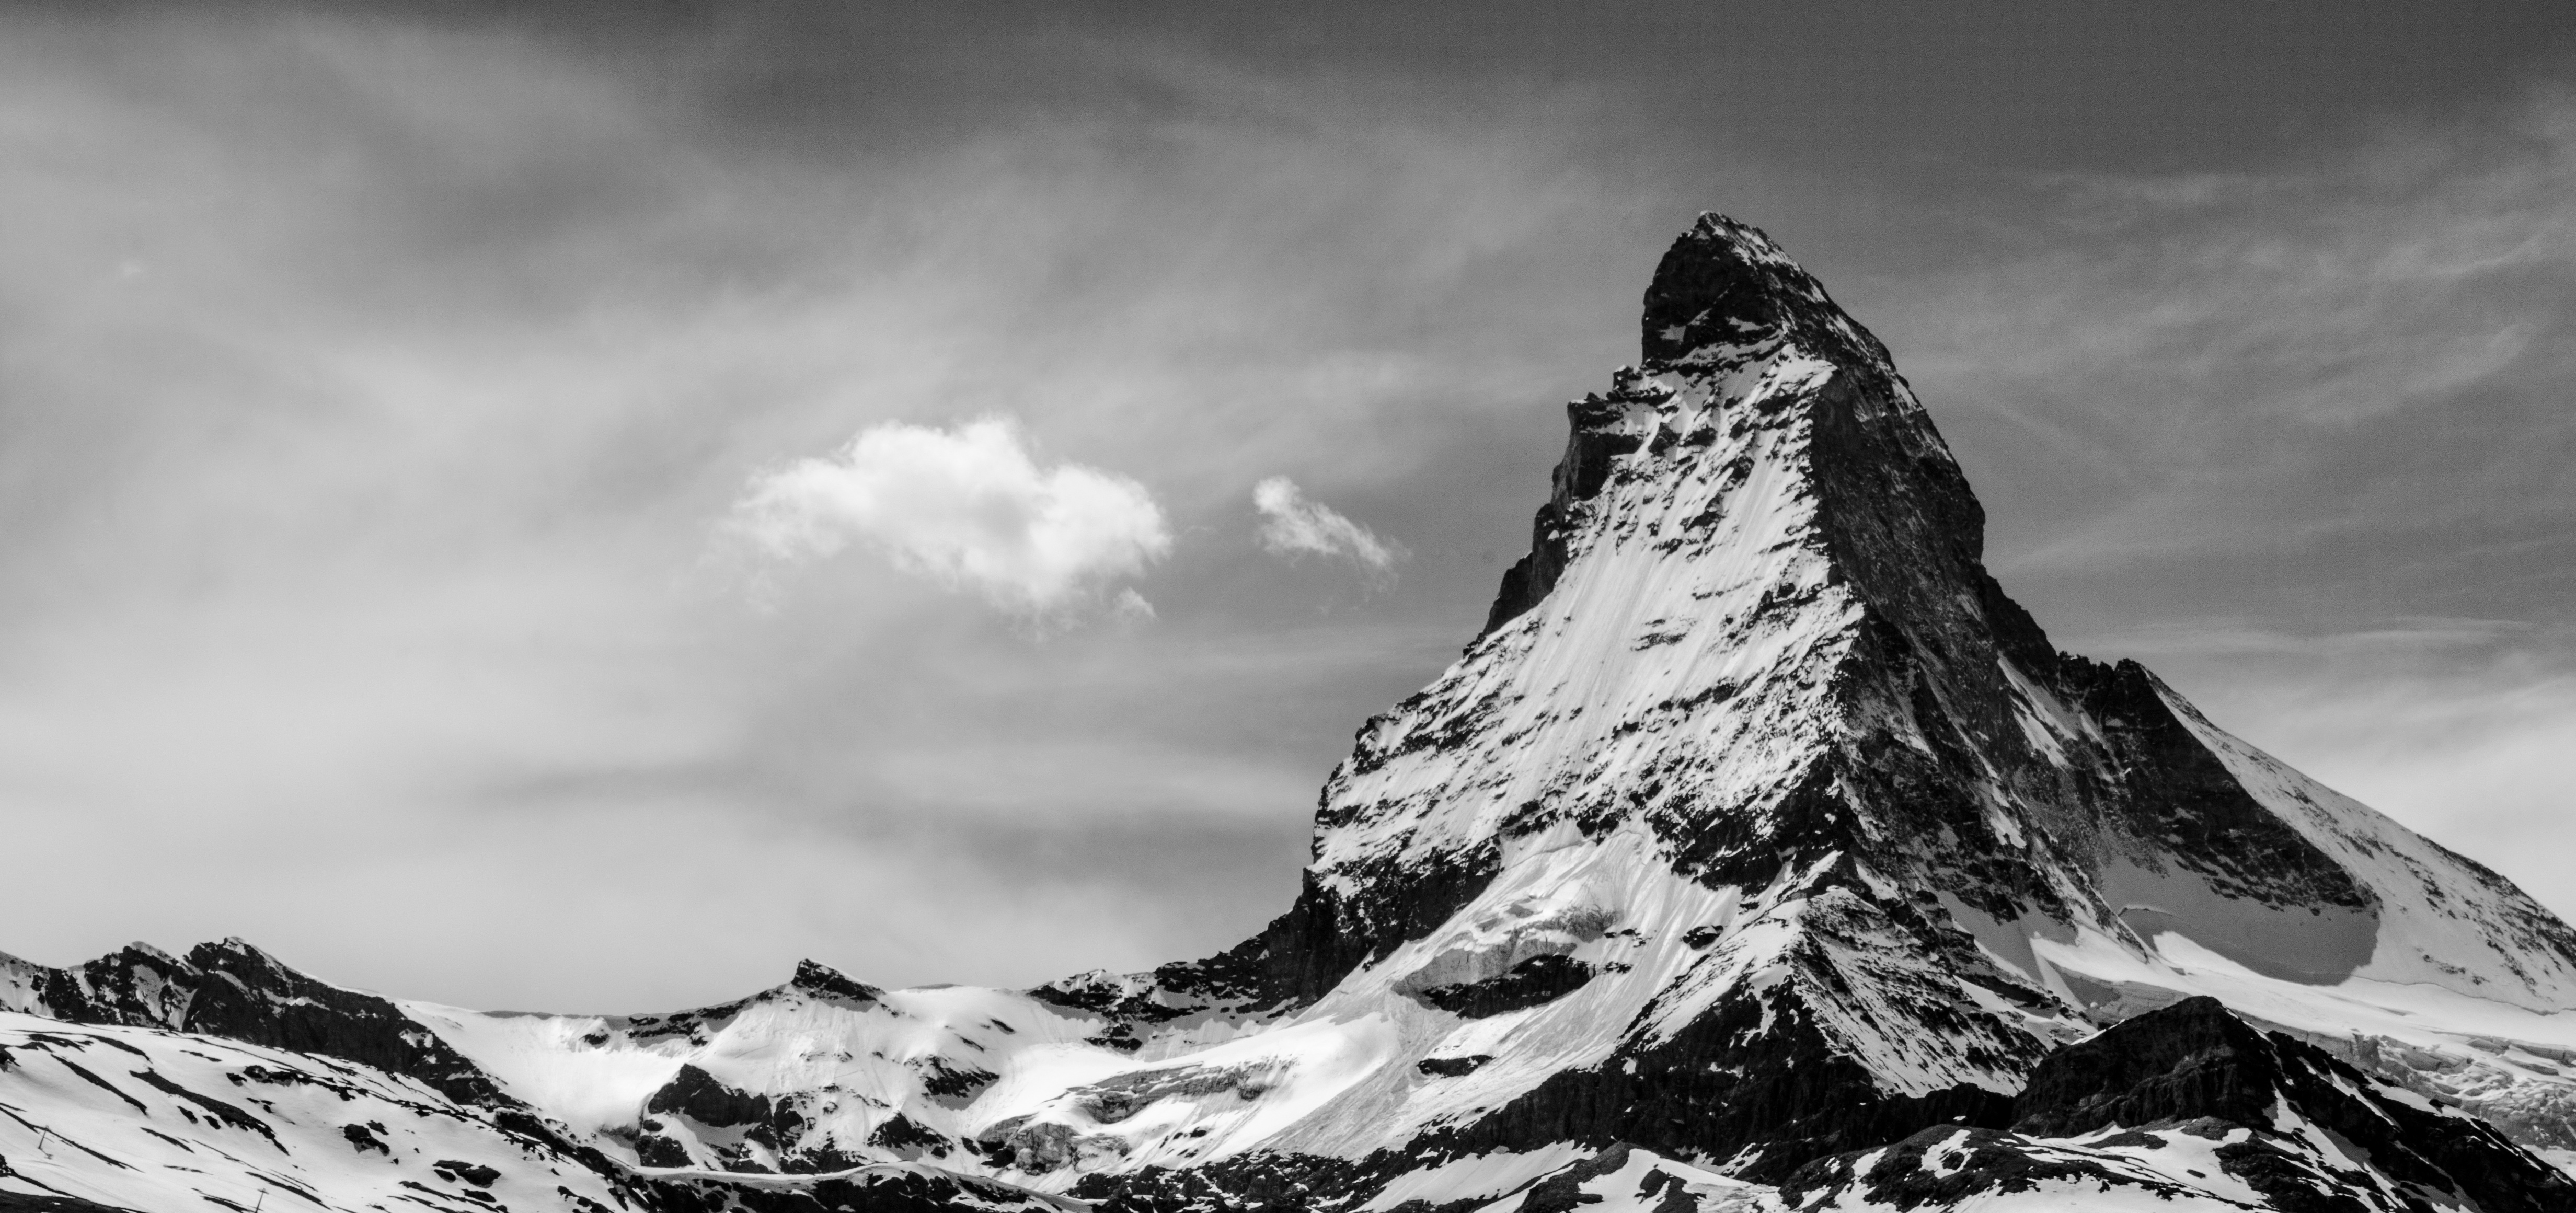 Free Images : nature, rock, snow, winter, cloud, black and white ...